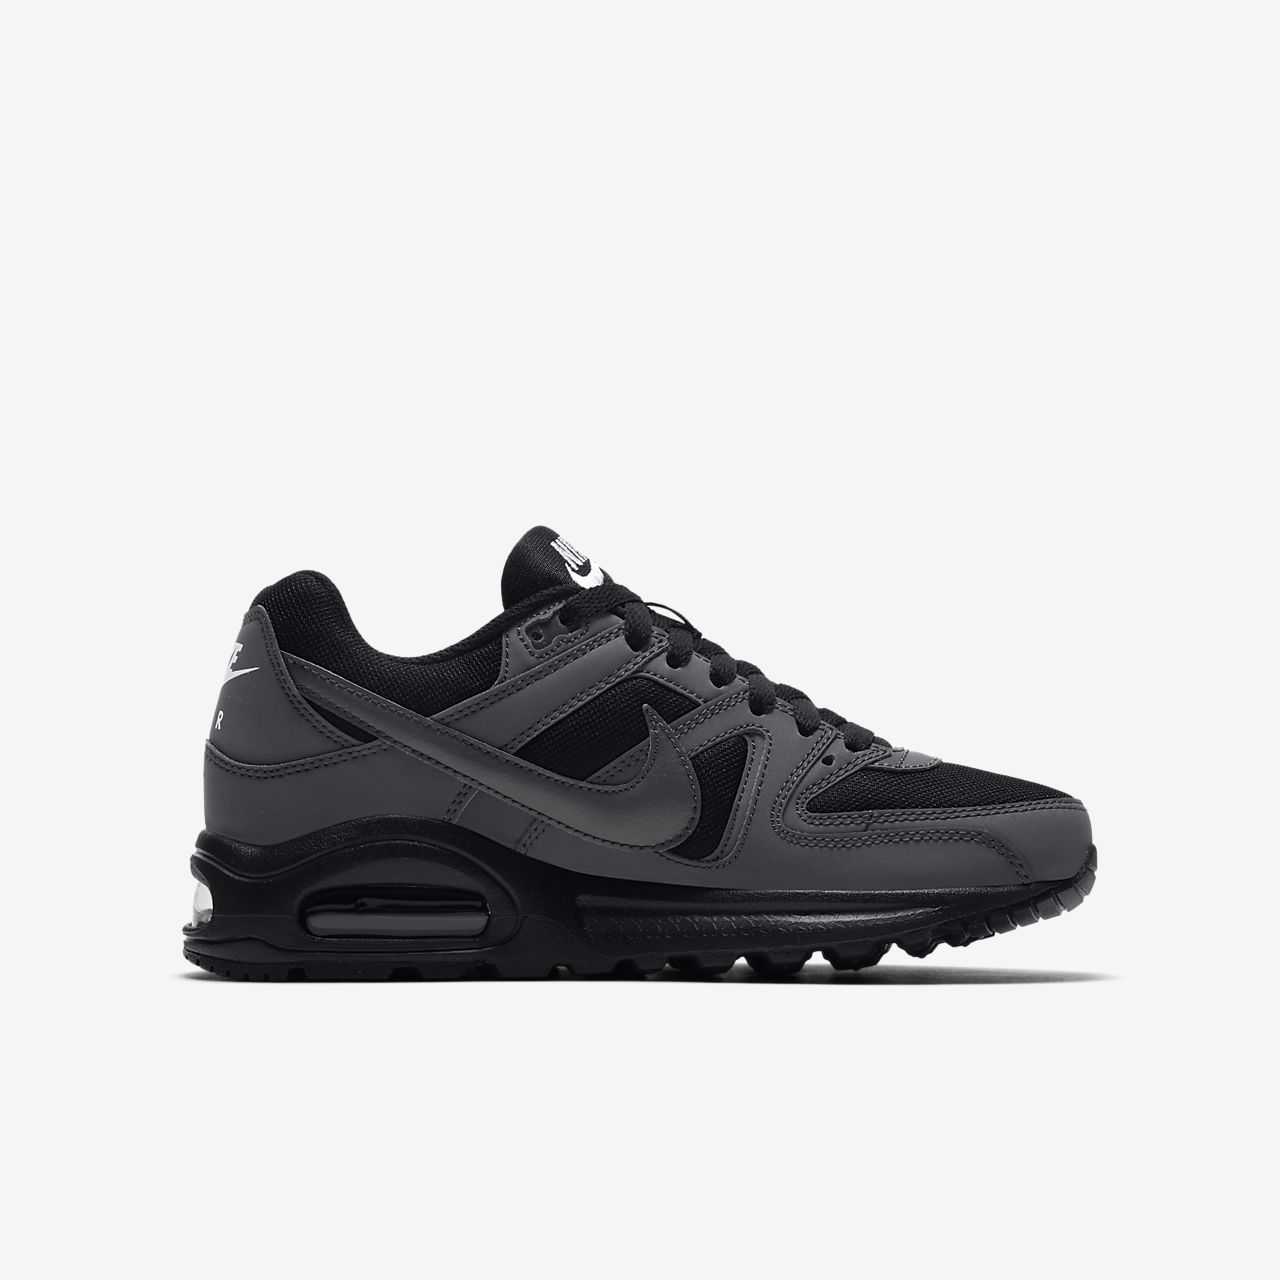 lowest price 387d4 40f68 ... Sko Nike Air Max Command Flex för ungdom